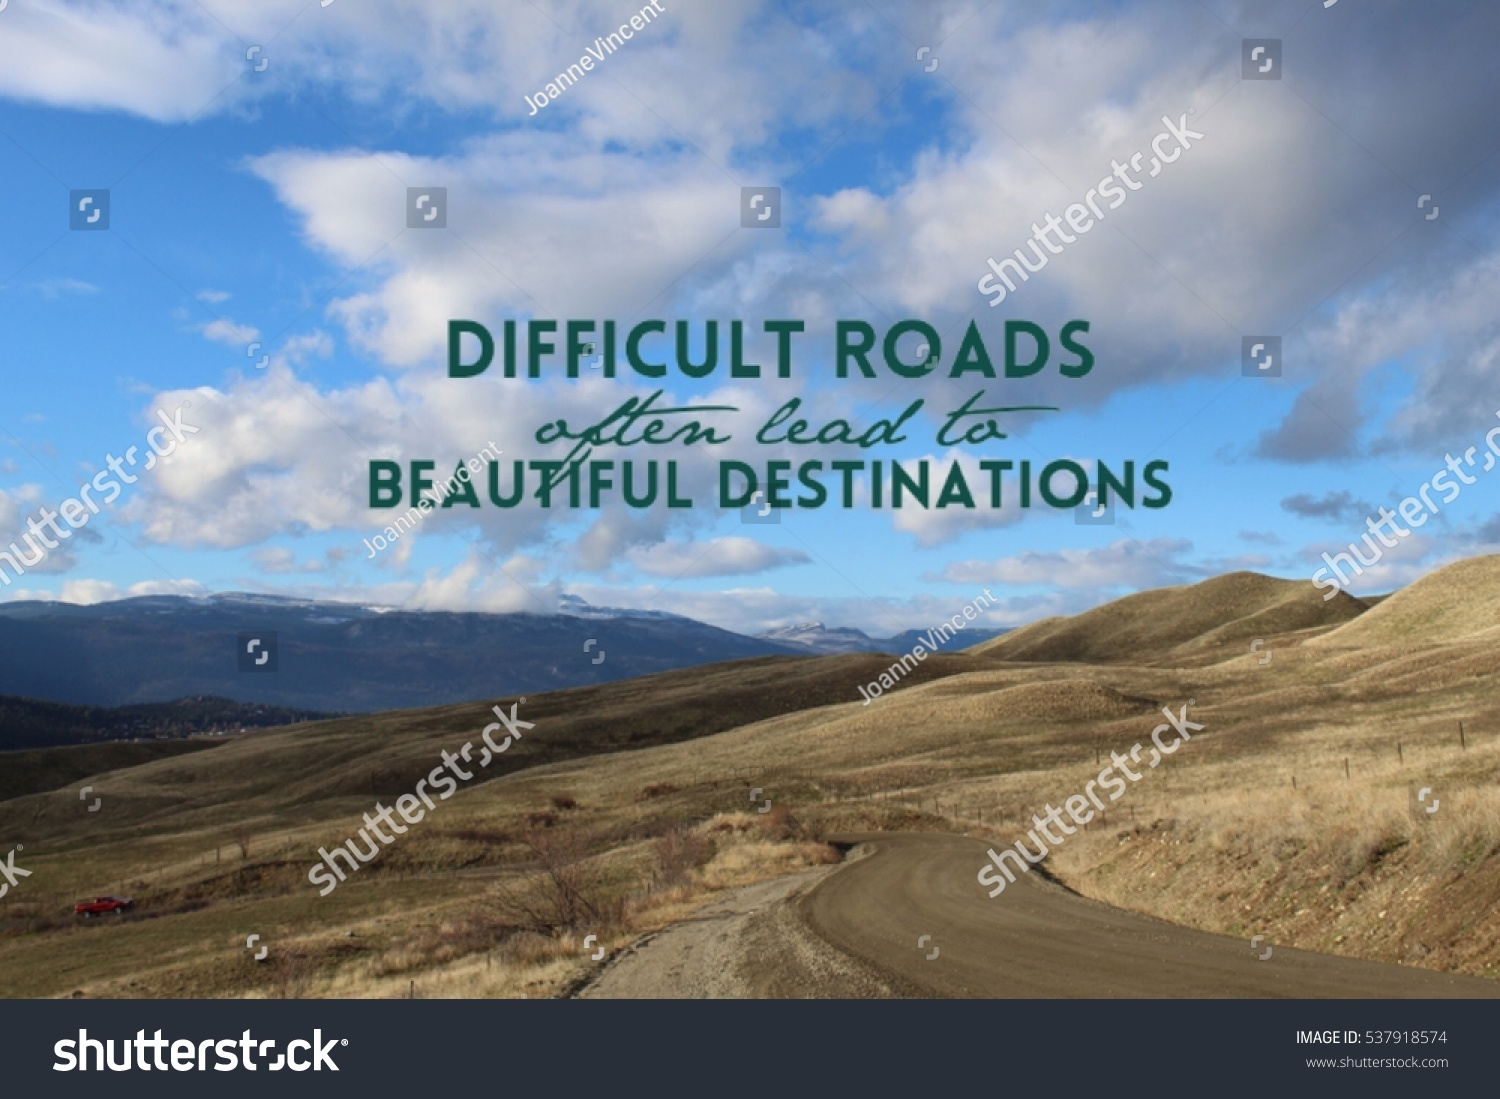 Scenic quotes daily inspirational quotations and sayings on - Inspirational Quote On Scenic Mountain Landscape View With Gravel Road Along Barren Fields And Hills In